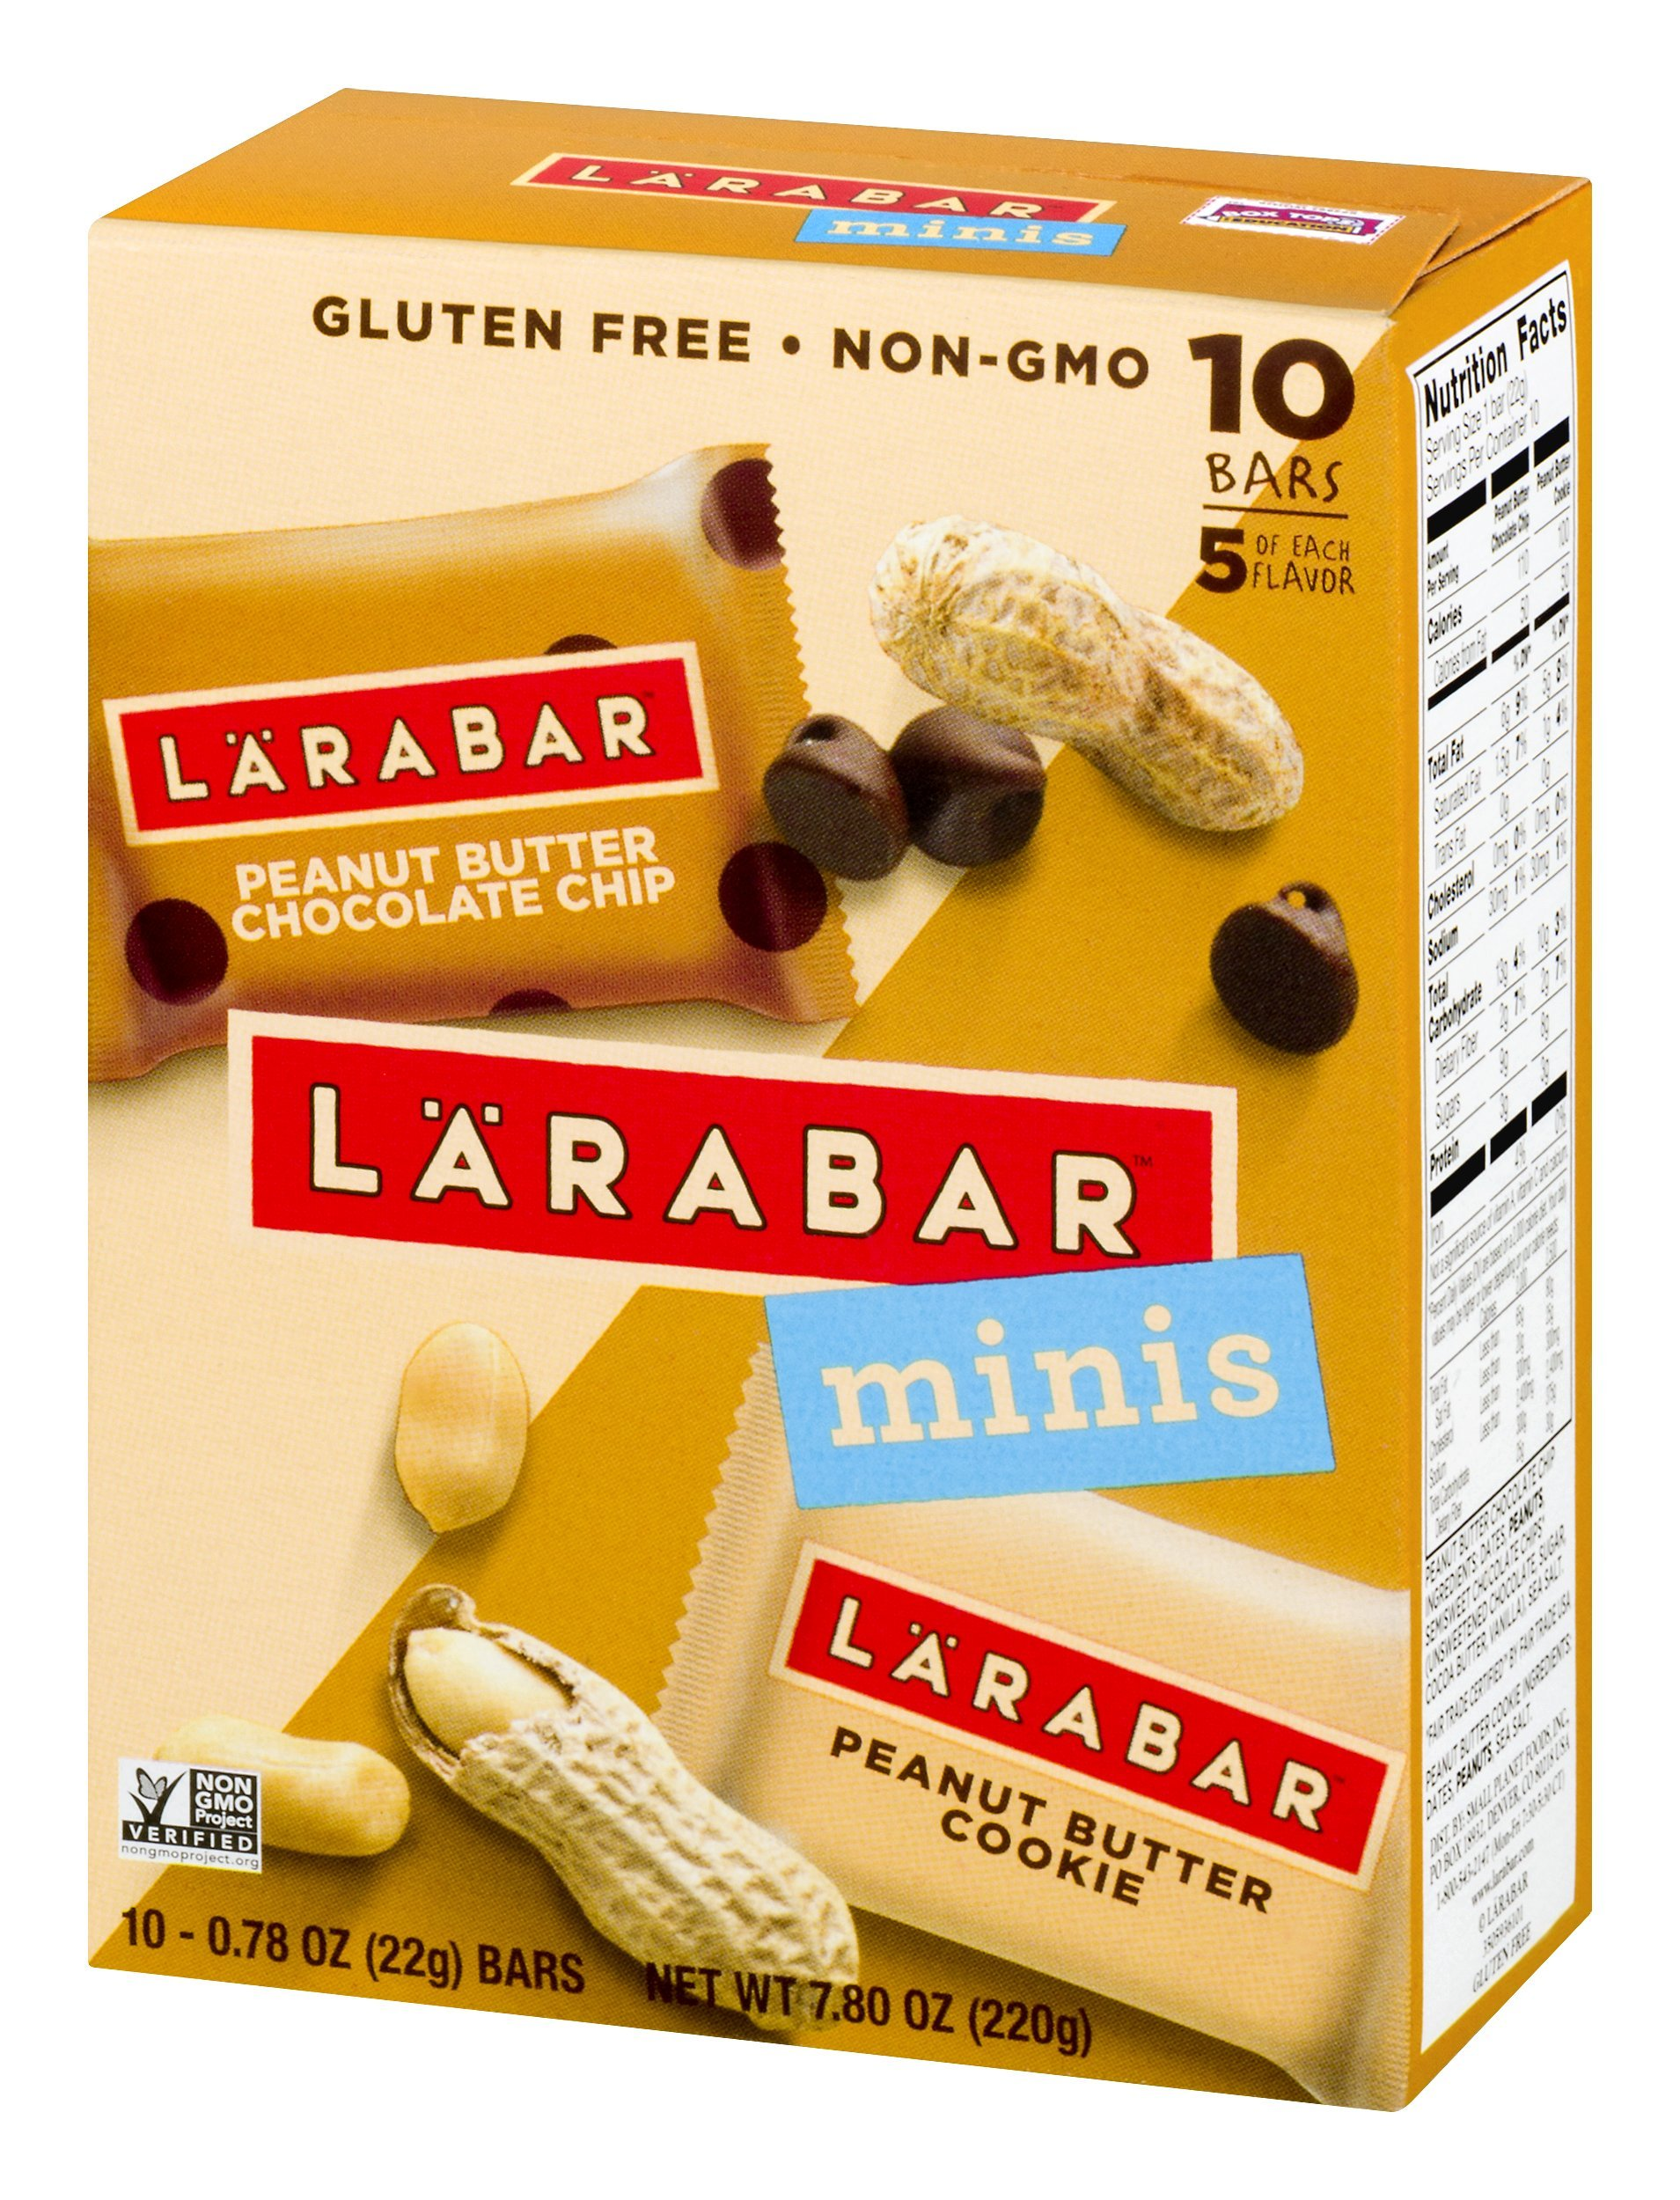 Larabar Minis Fruit and Nut Bar, Peanut Butter Chocolate Chip and Peanut Butter Cookie, 0.78 oz, 10 Count (Pack of 8)